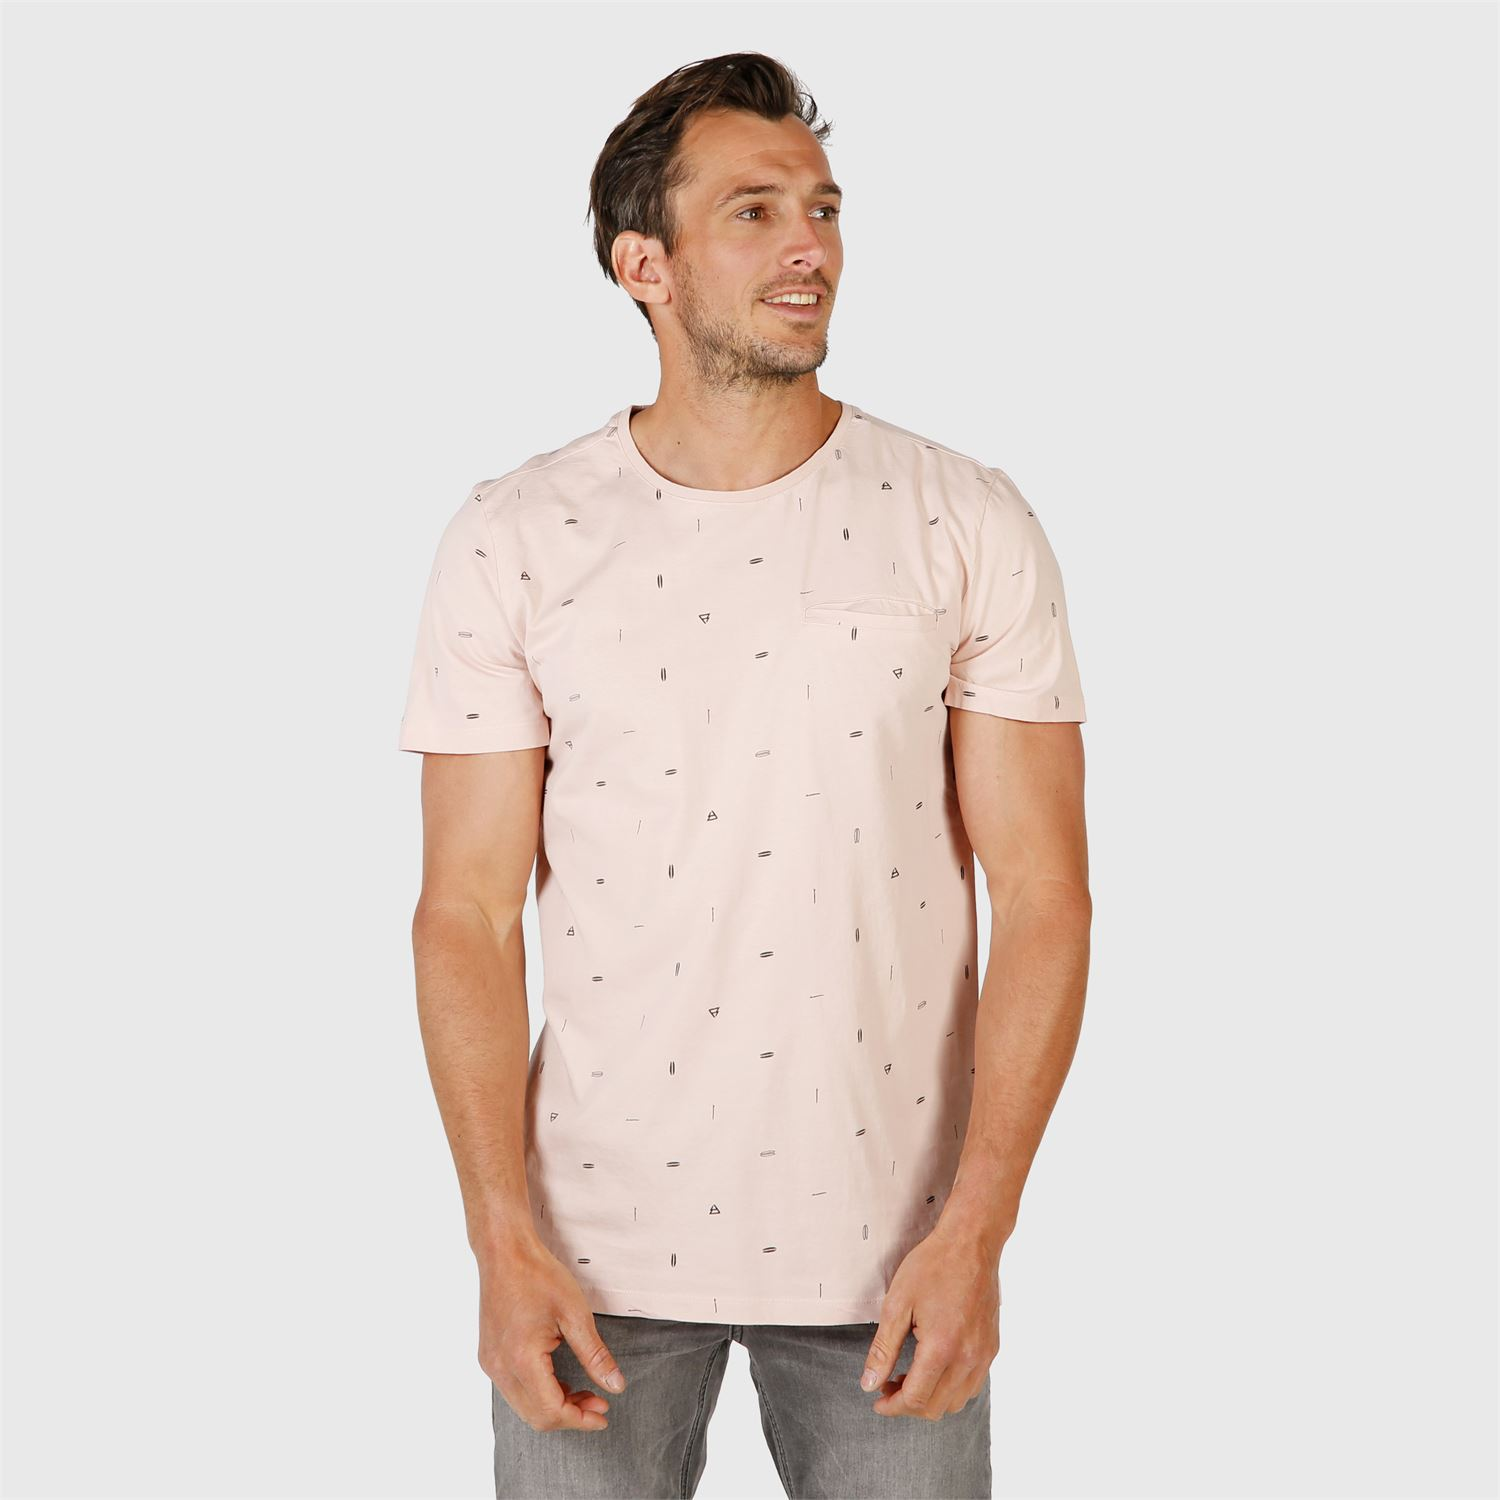 Ben-Mini Mens T-shirt